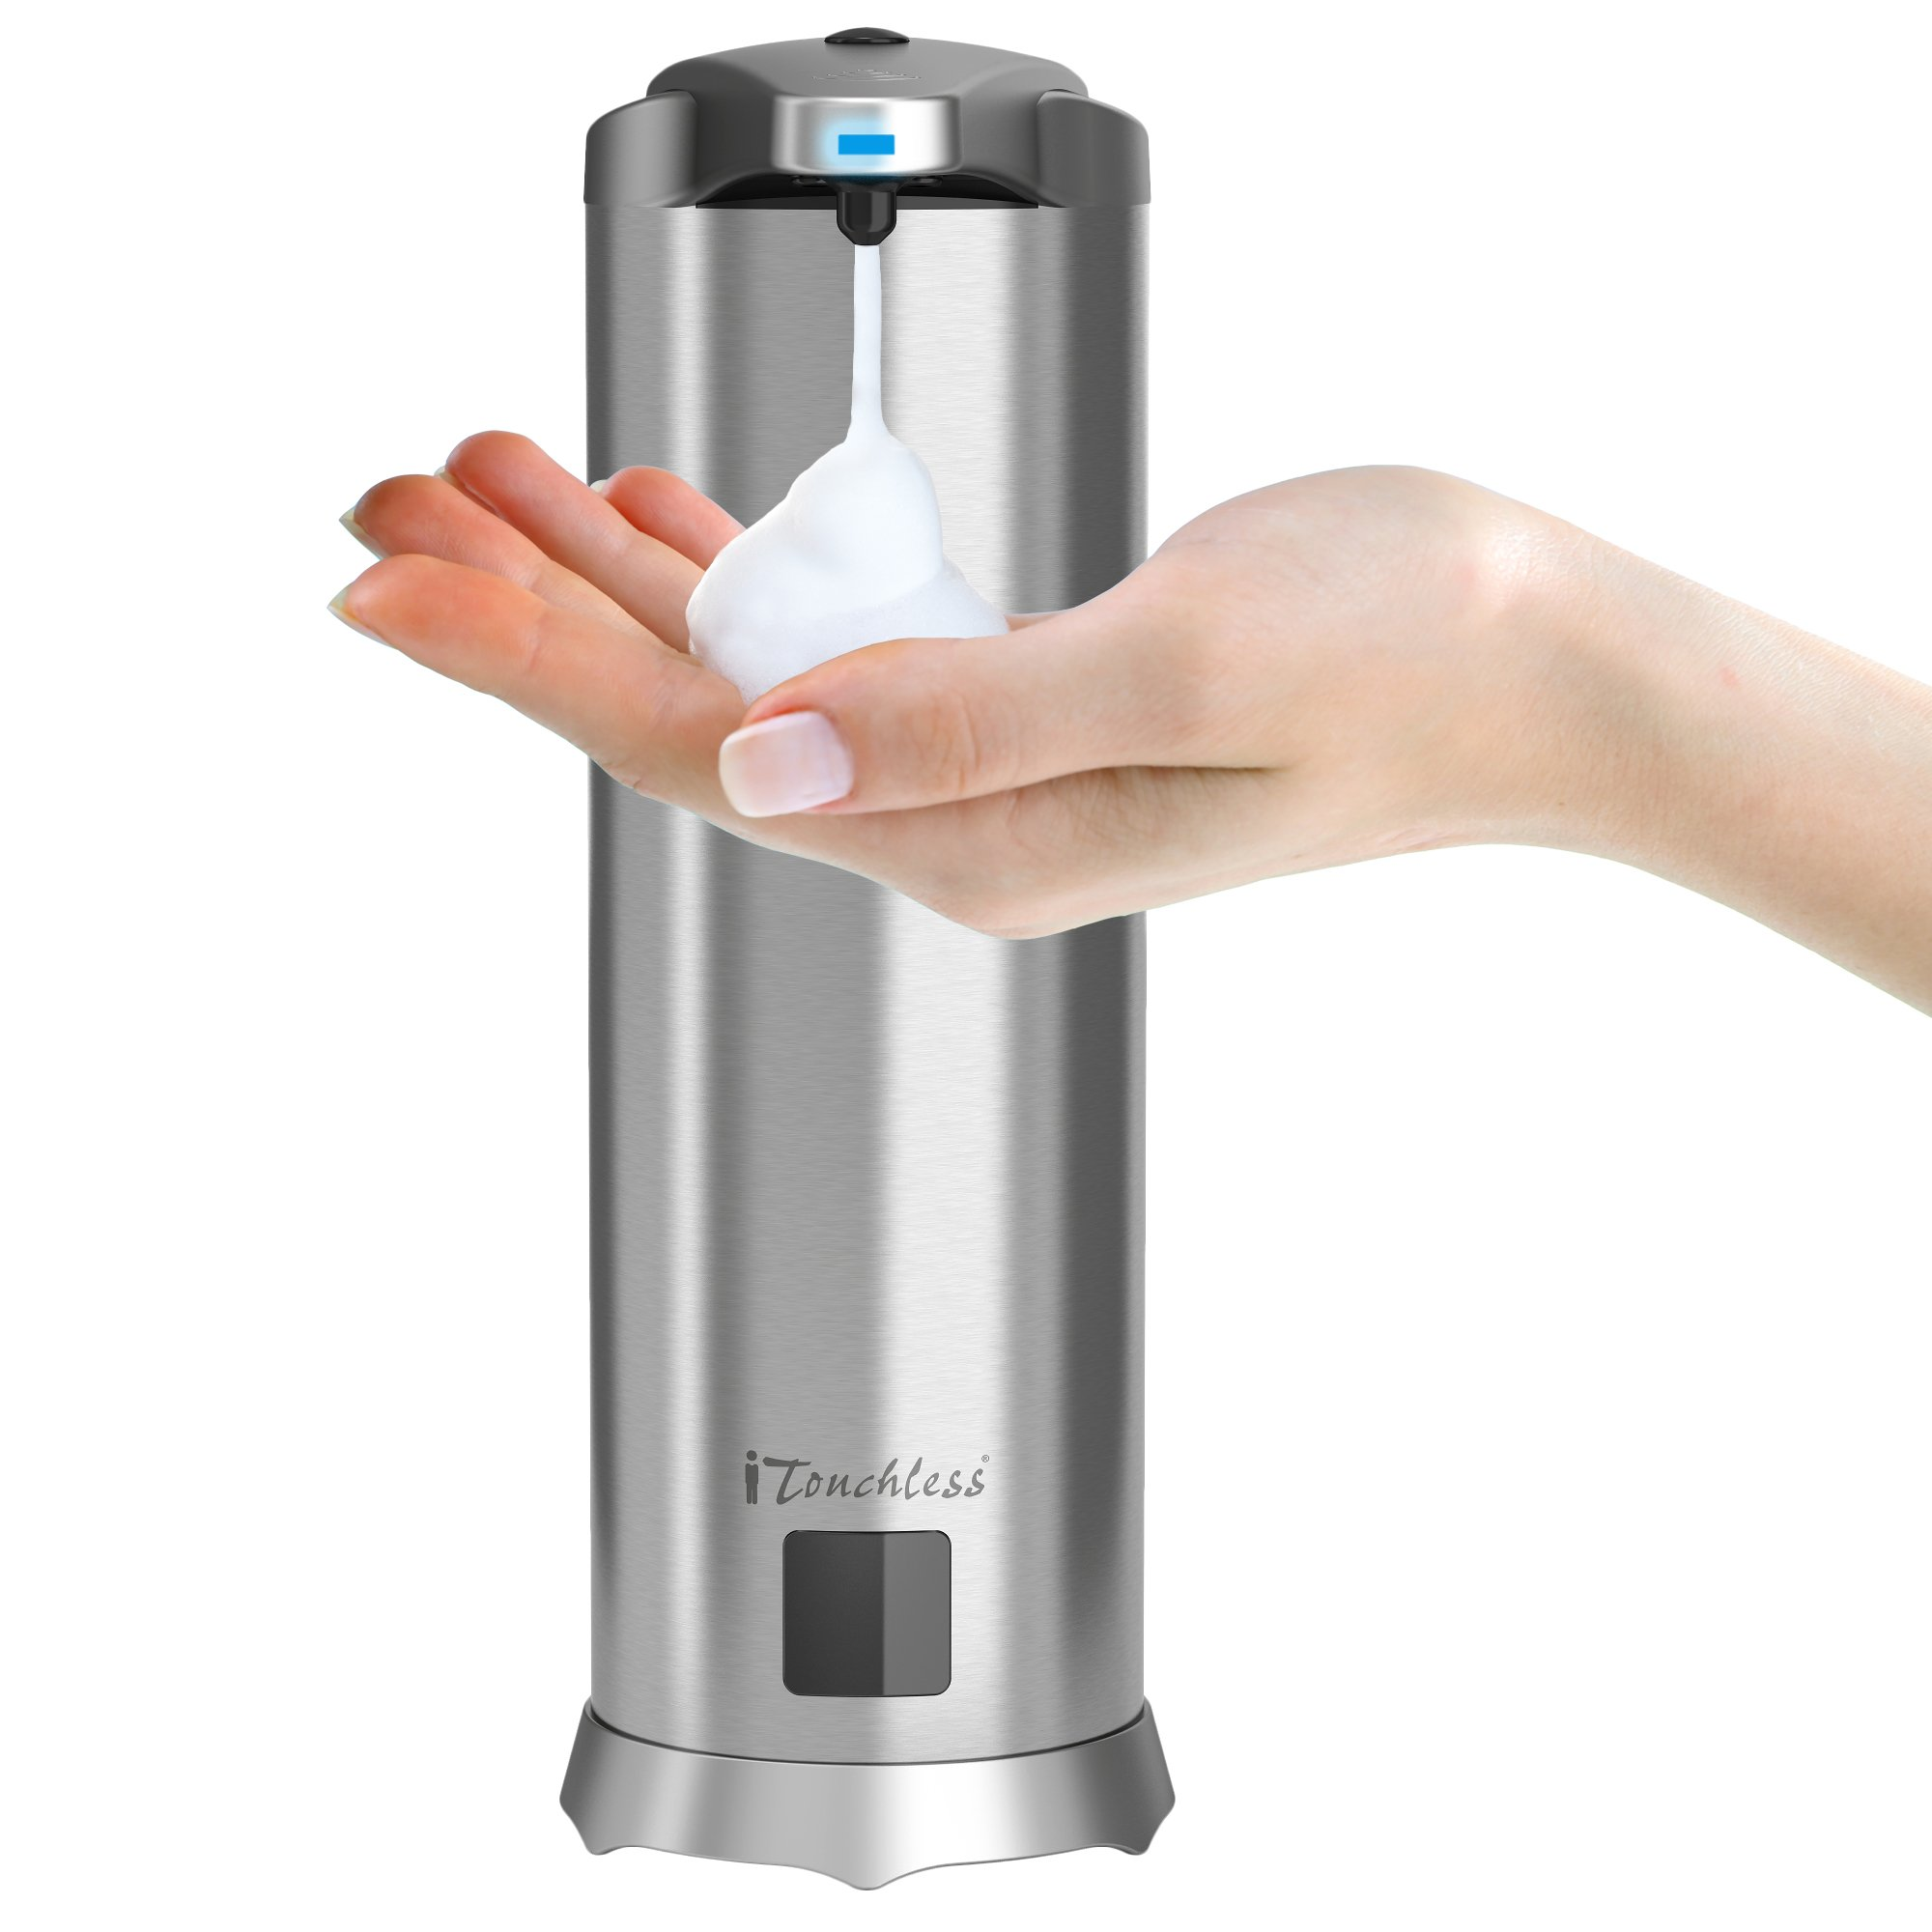 iTouchless Ultraclean Automatic Sensor Foam Soap Dispenser, Rust-Free Stainless Steel, Foaming Hand Wash Touchless Pump for Bathroom & Kitchen by iTouchless